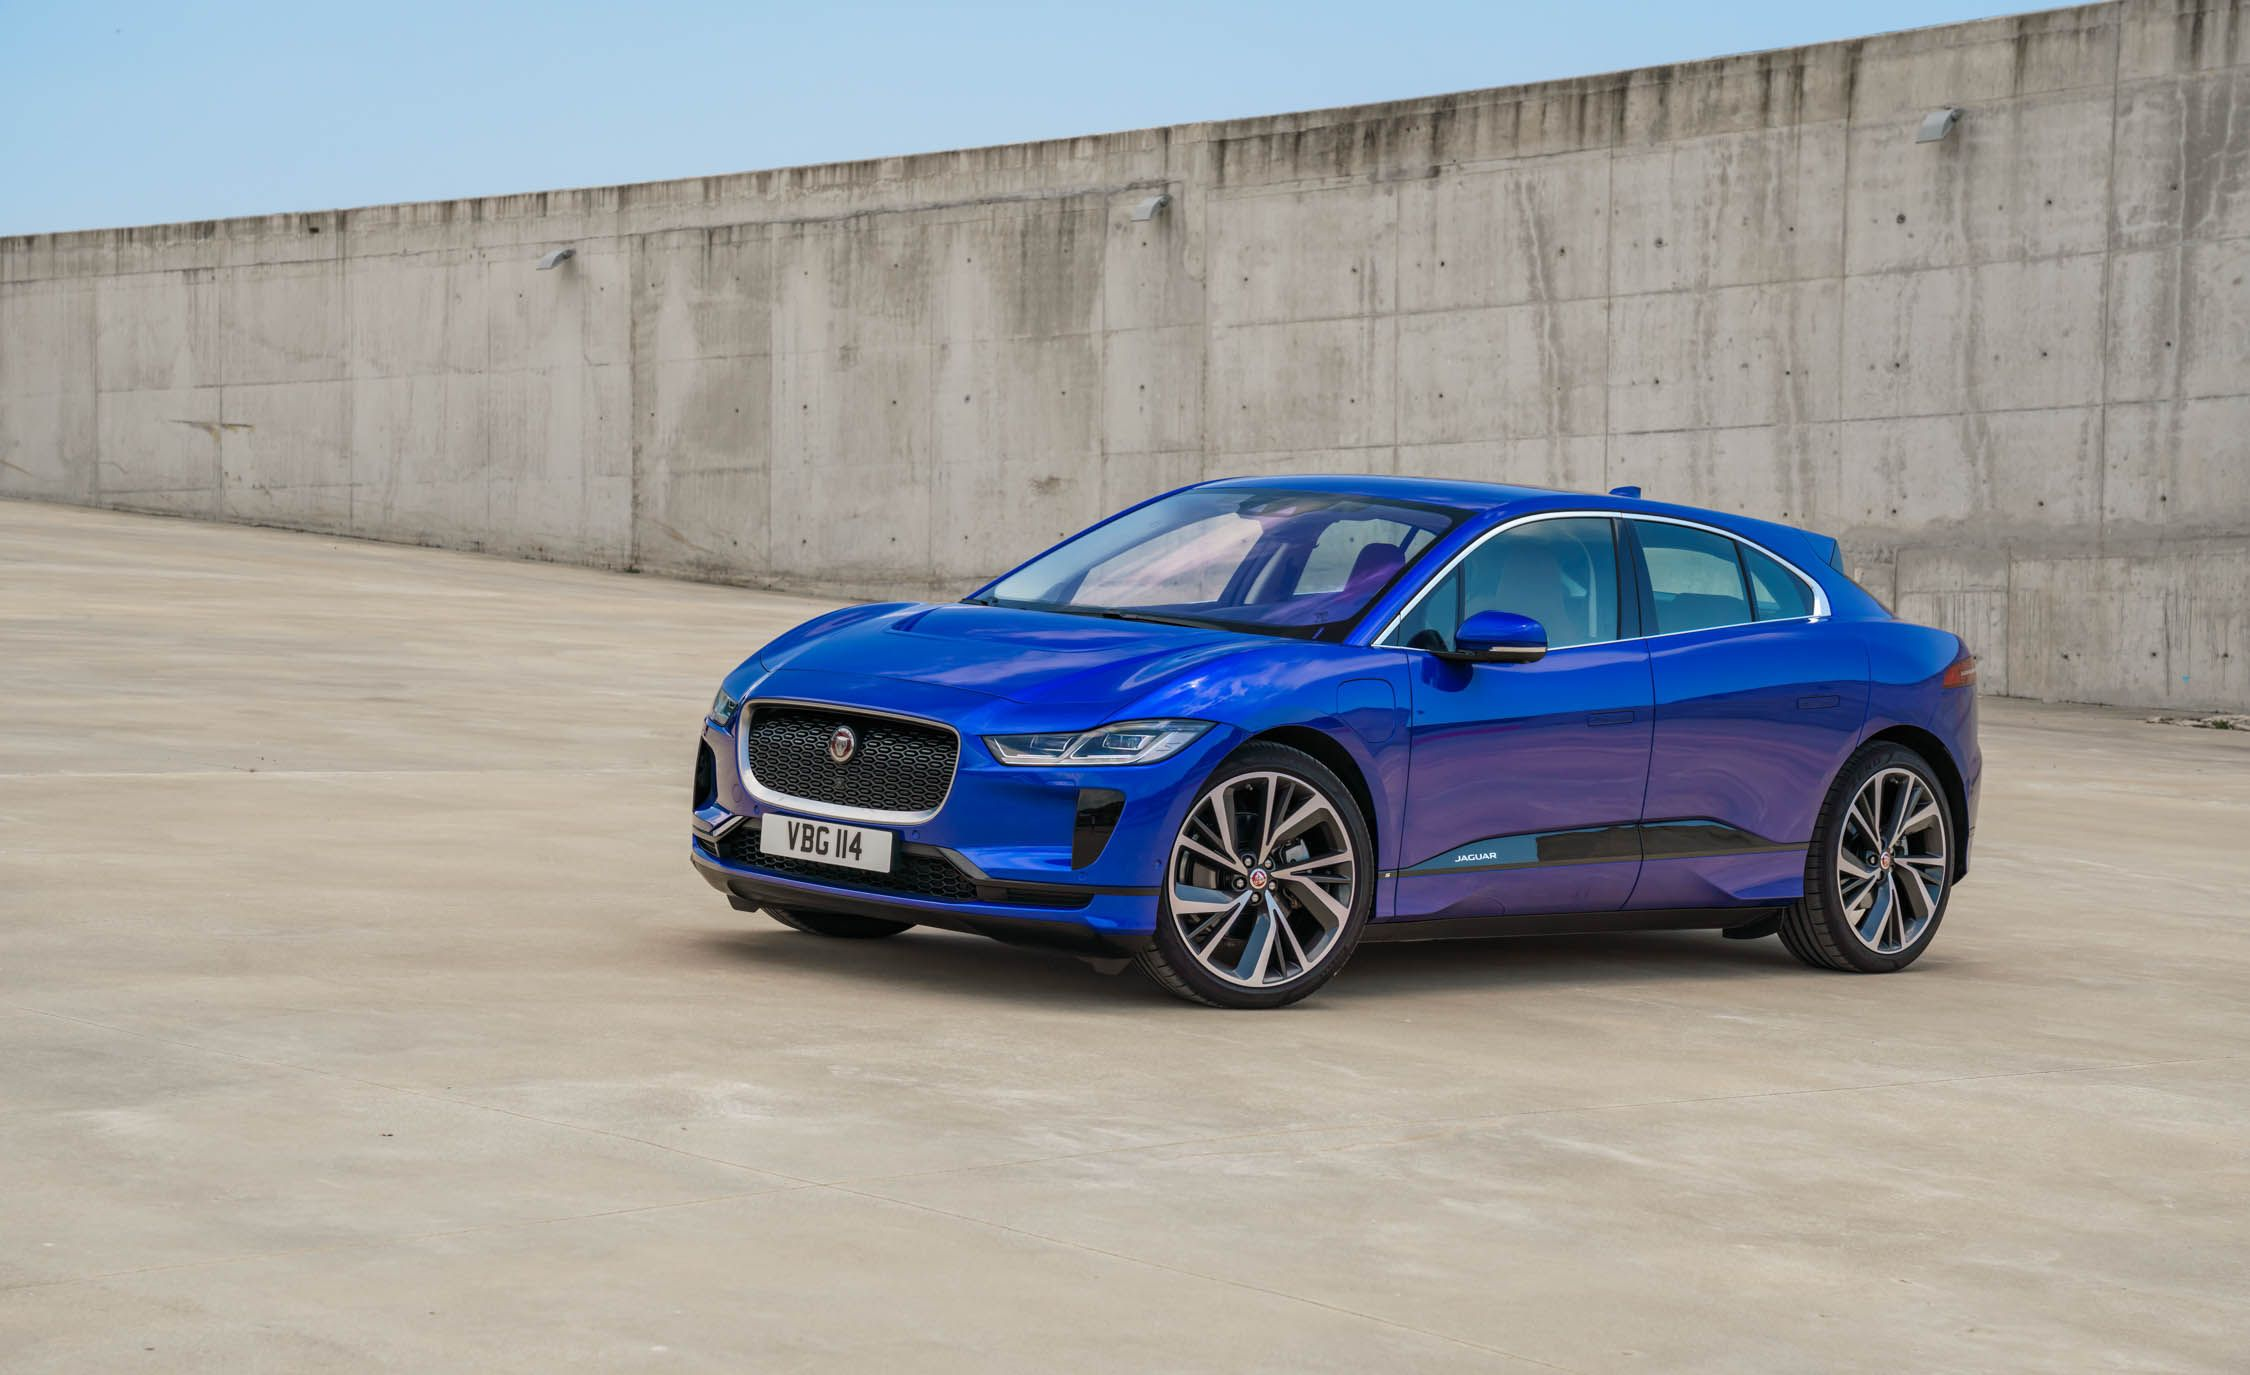 Jaguar Is Reportedly Considering Going Fully Electric across Its Entire Lineup